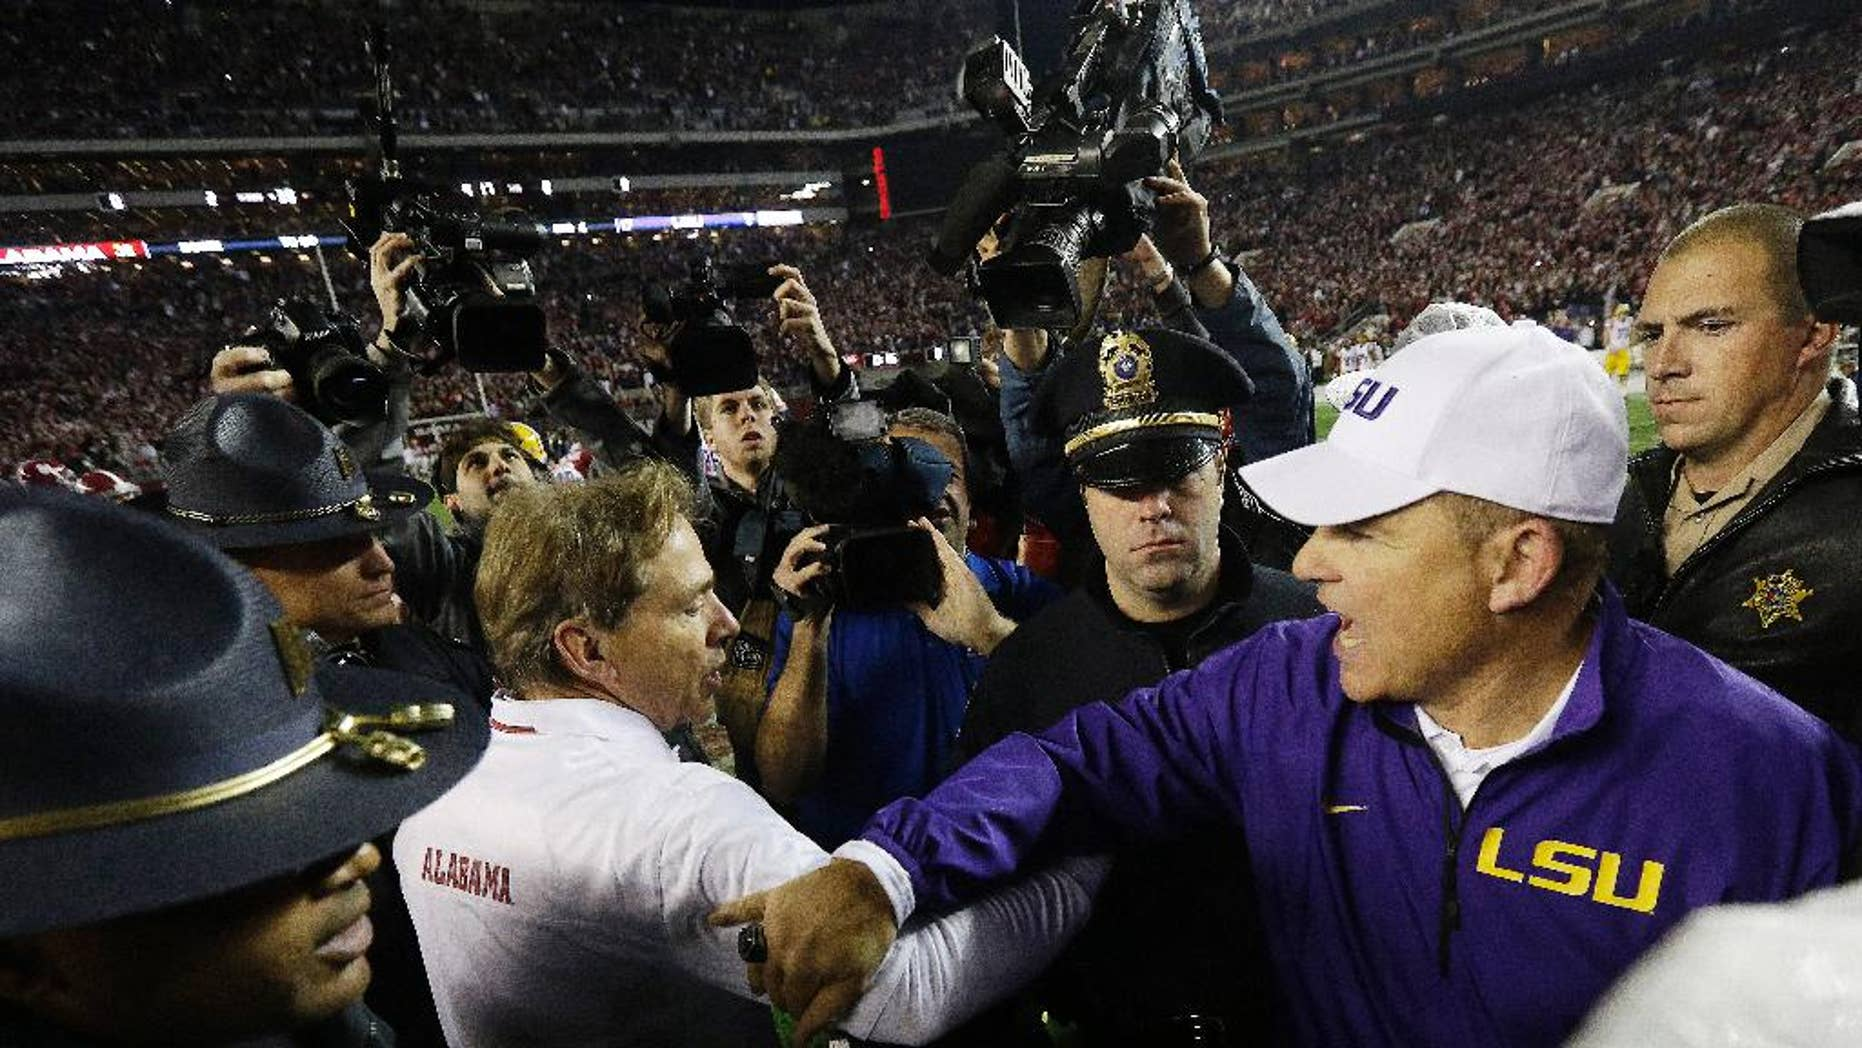 FILE - In this Nov. 9, 2013, file photo, Alabama head coach Nick Saban speaks with LSU head coach Les Miles after an NCAA college football game in Tuscaloosa, Ala.  (AP Photo/Dave Martin, File)